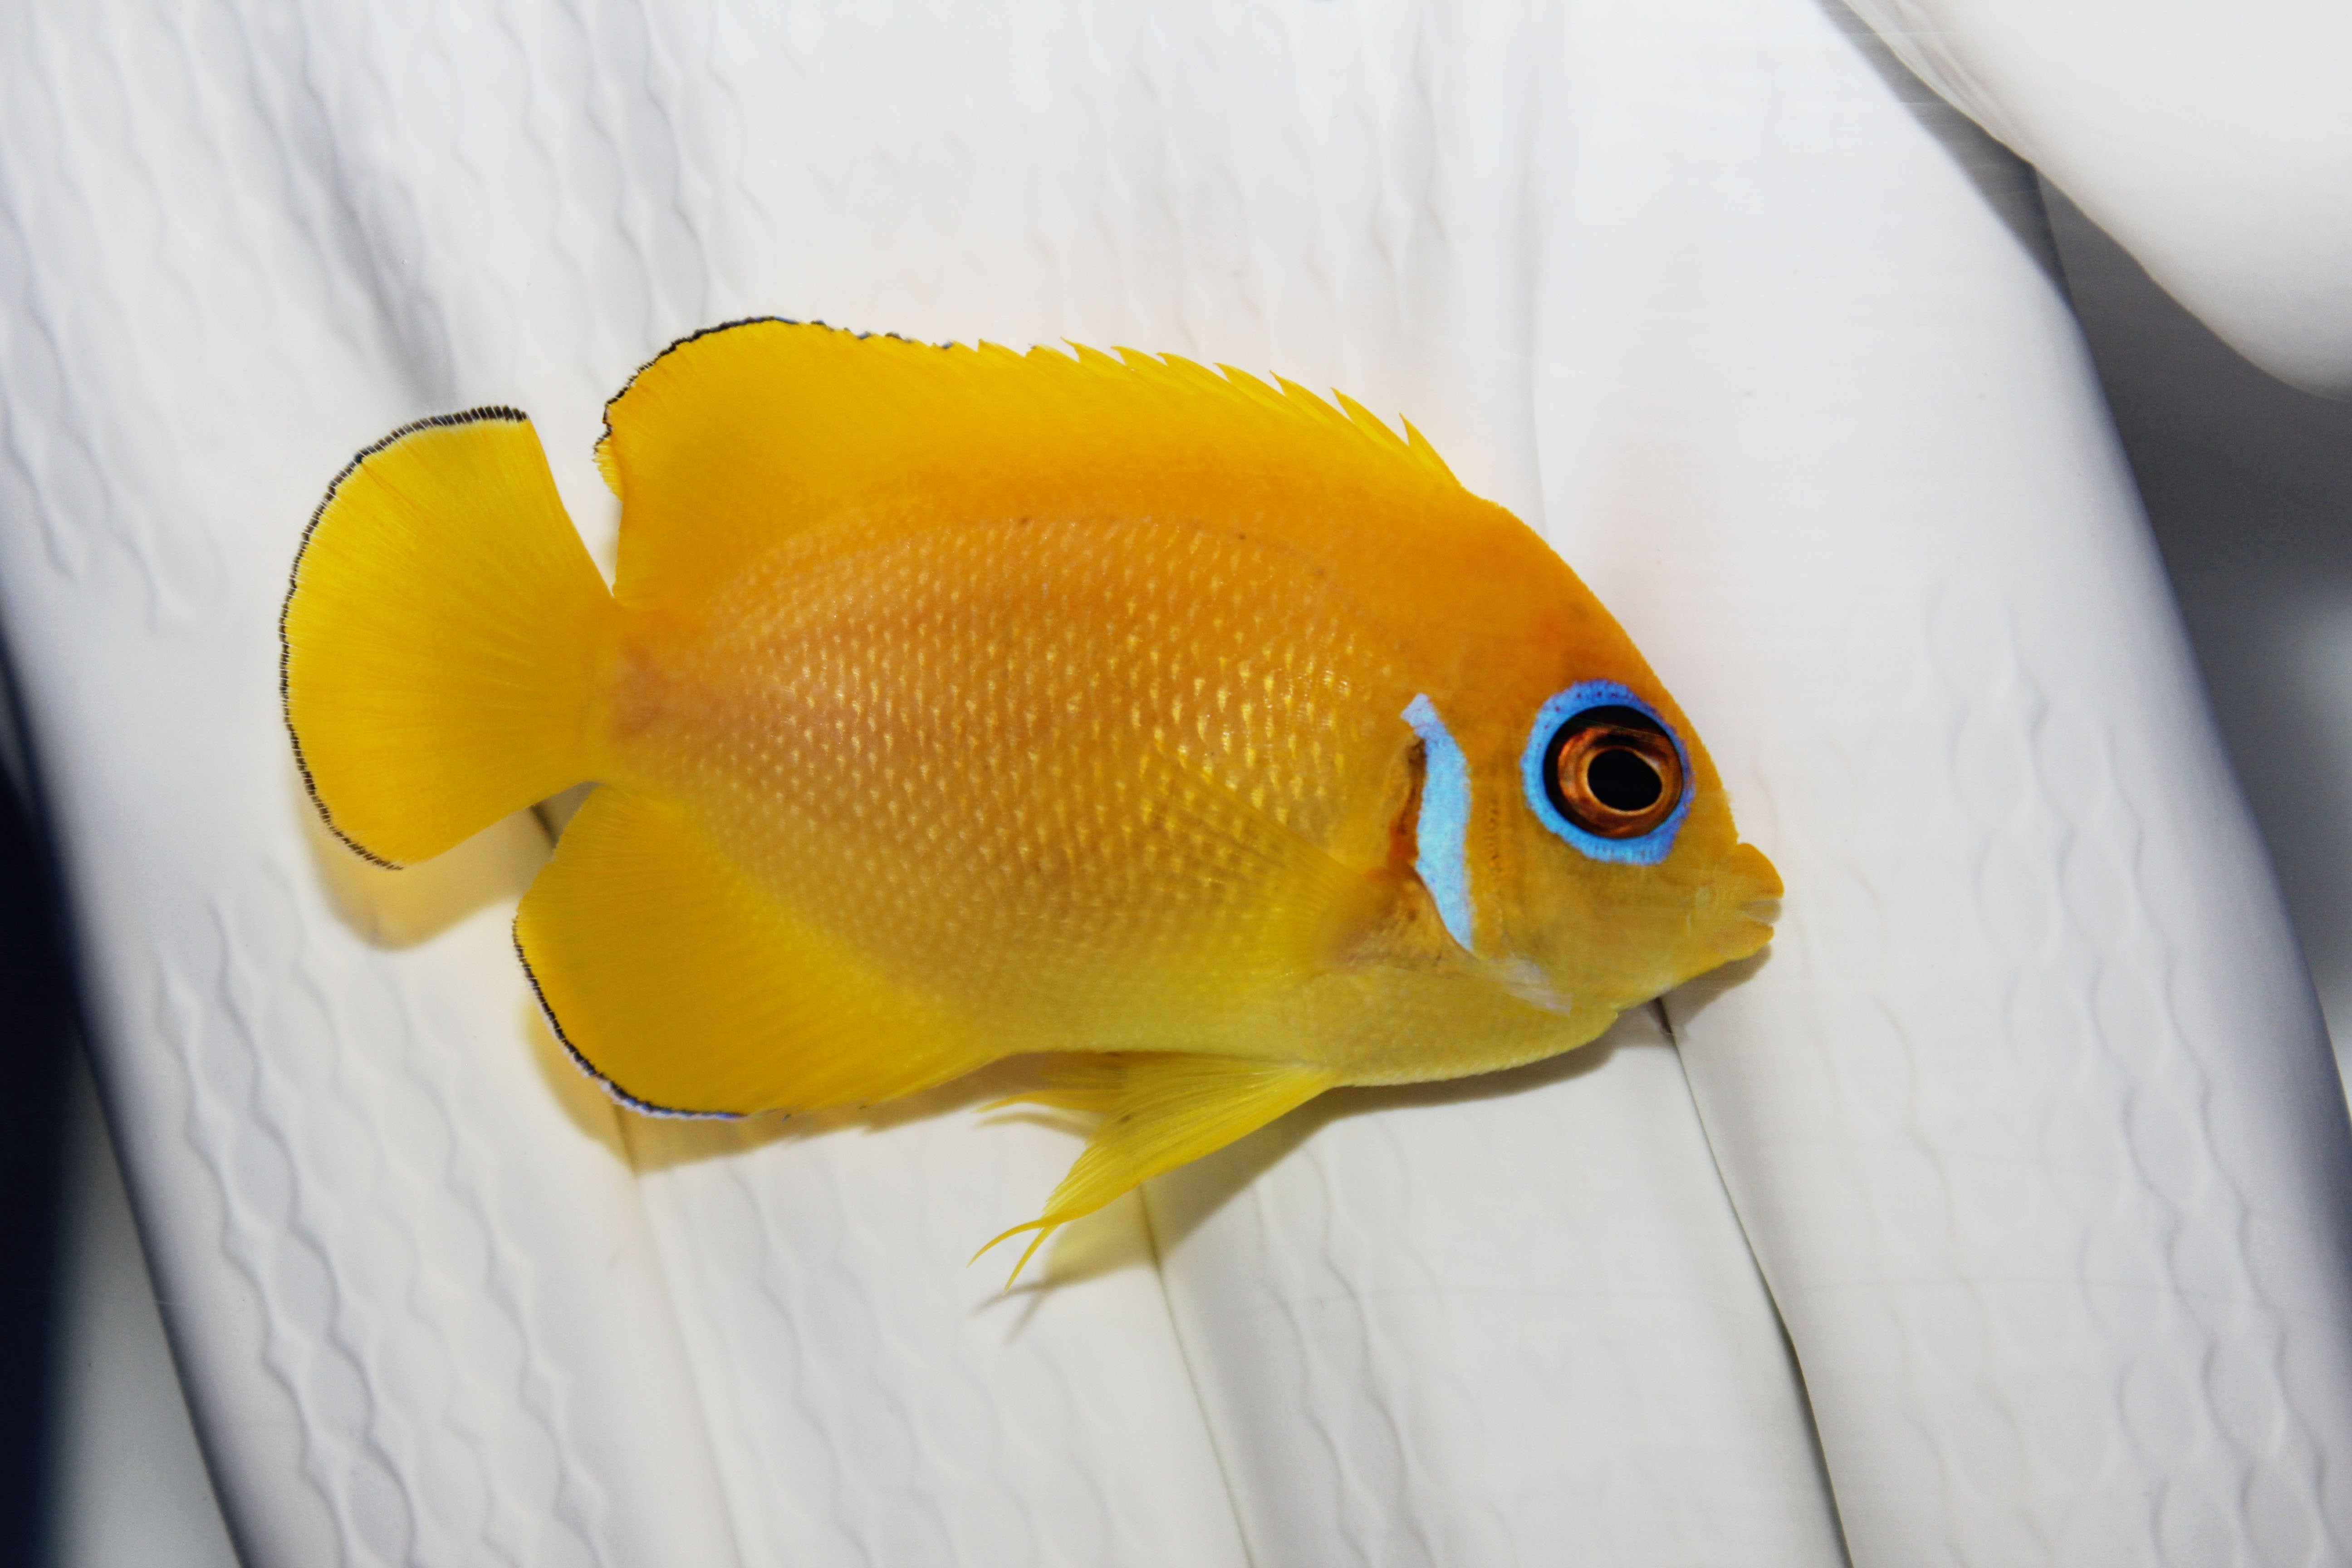 Lemon Peel Angelfish (Centropyge flavissima)